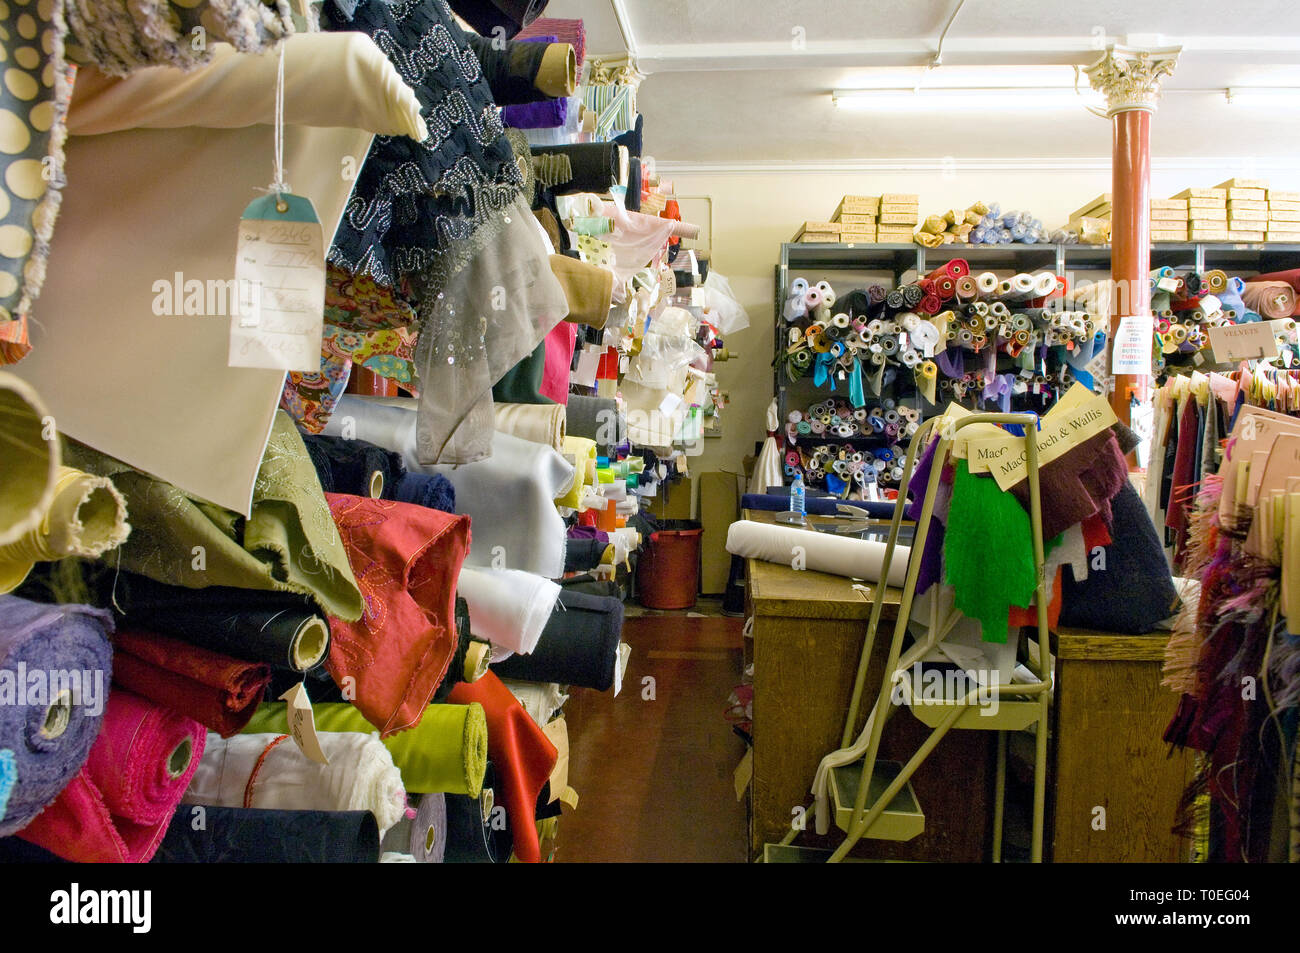 Macculloch & Wallis a fabric shop in Soho, London - Stock Image